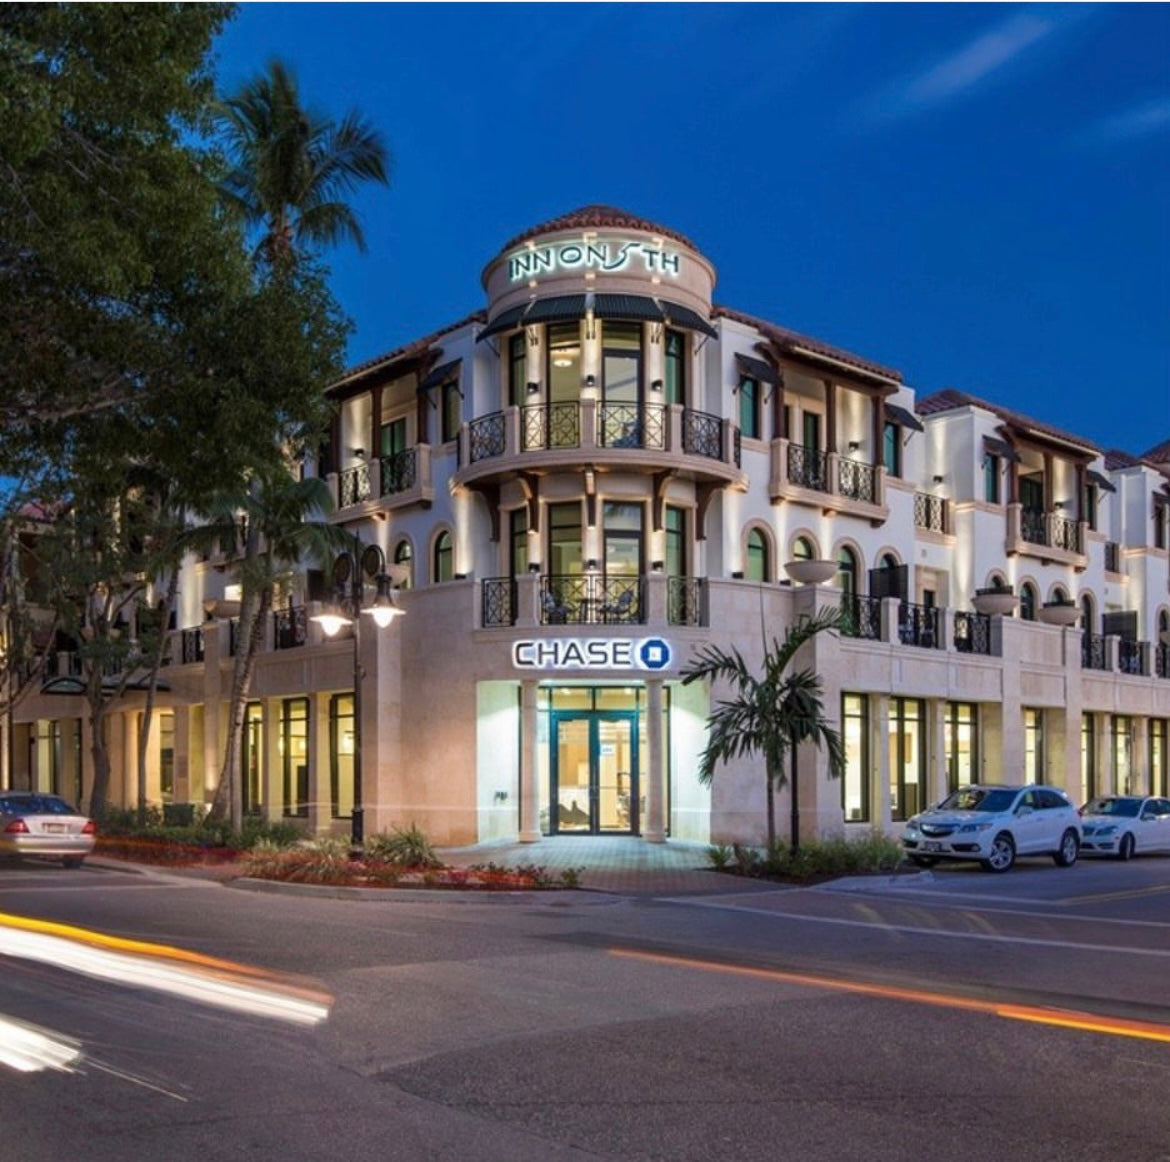 The Inn of Fifth in Naples Florida